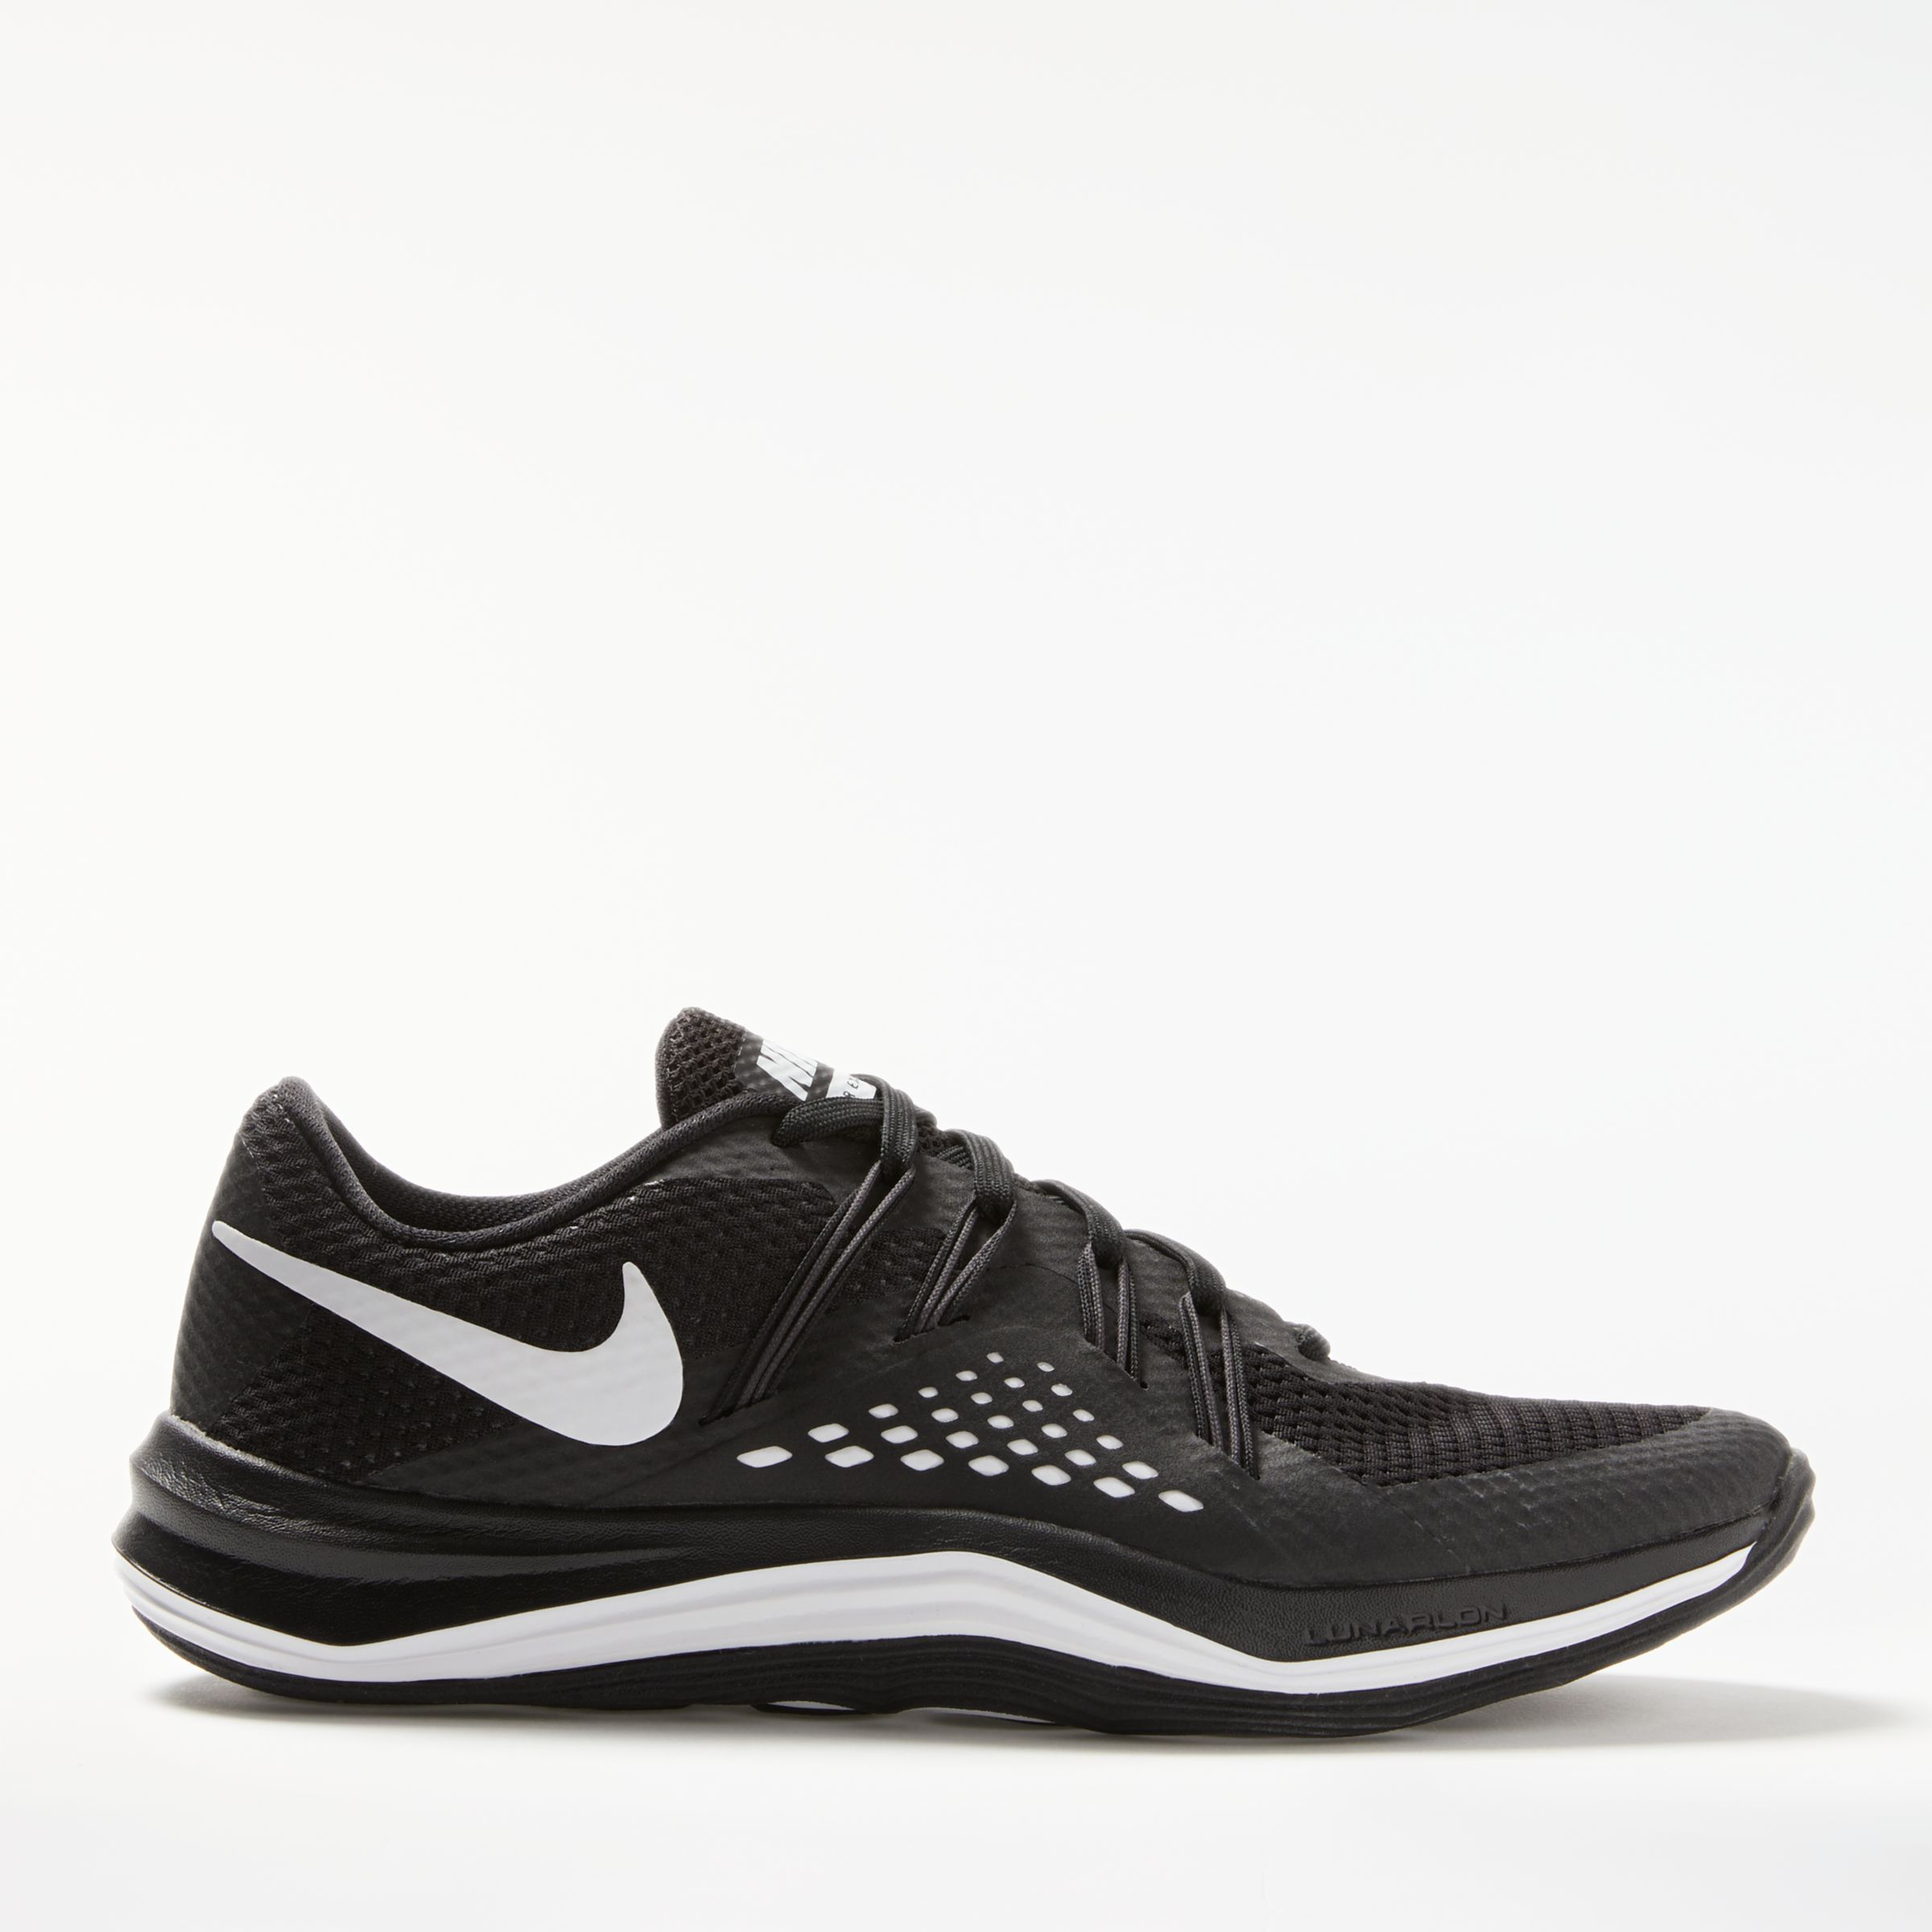 Nike Women's W Lunar Exceed Tr Fitness